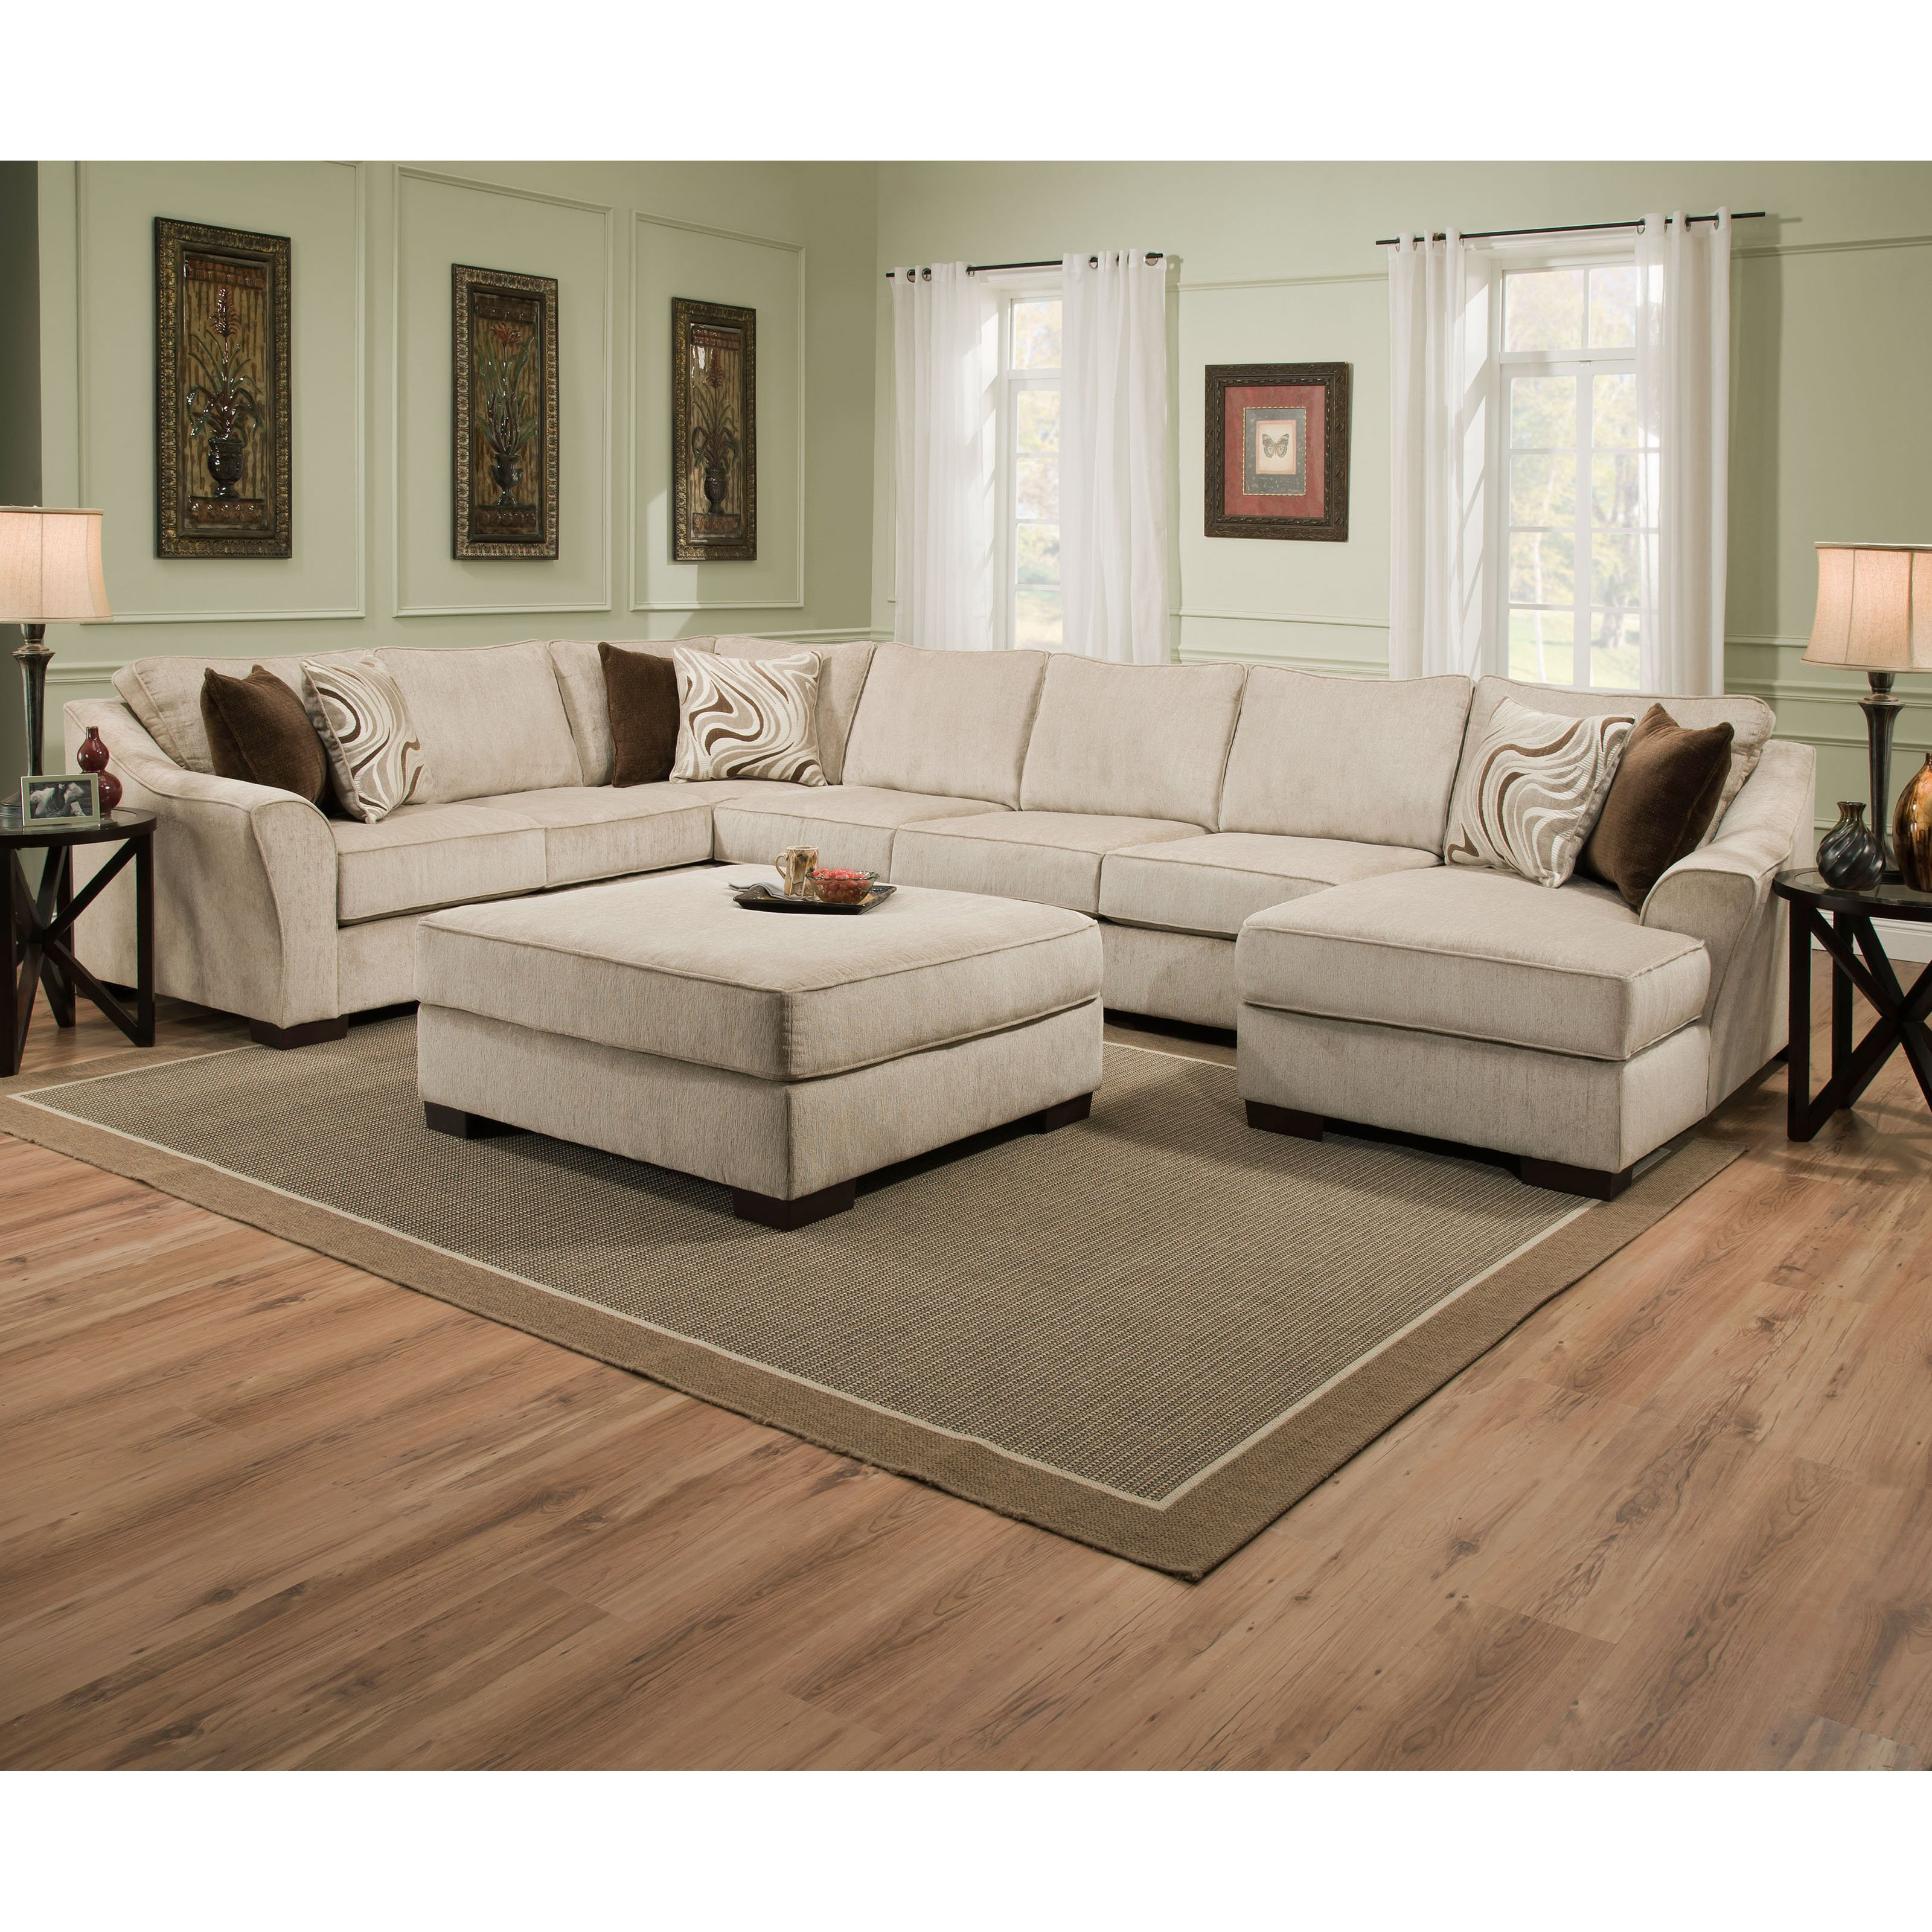 Simmons Kingley Left Facing Sofa Sectional With Chaise Walmart Com